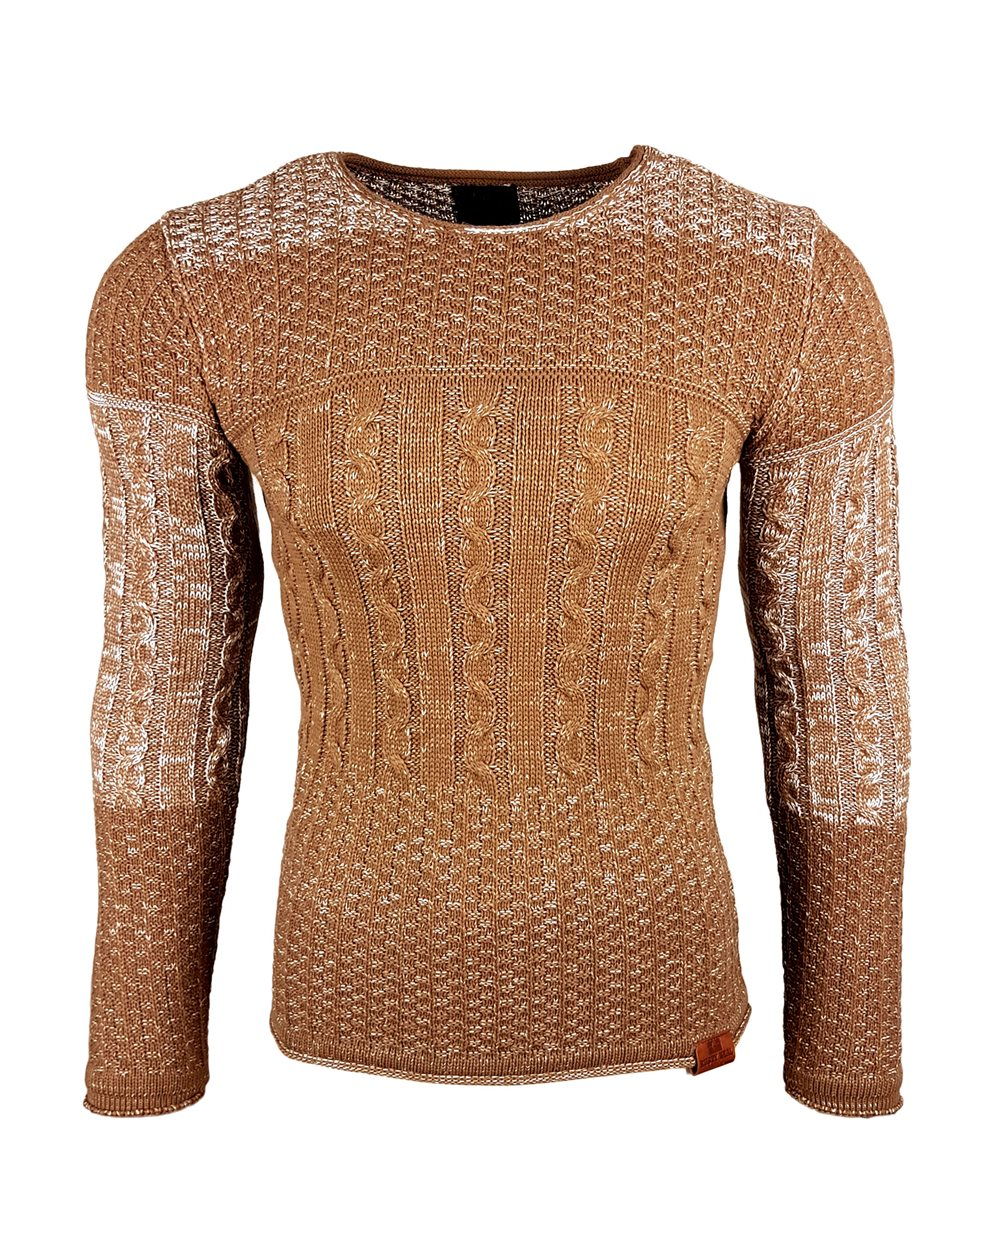 Subliminal Mode - Pull homme col rond - Tricot grosse maille - Col a ras du coup